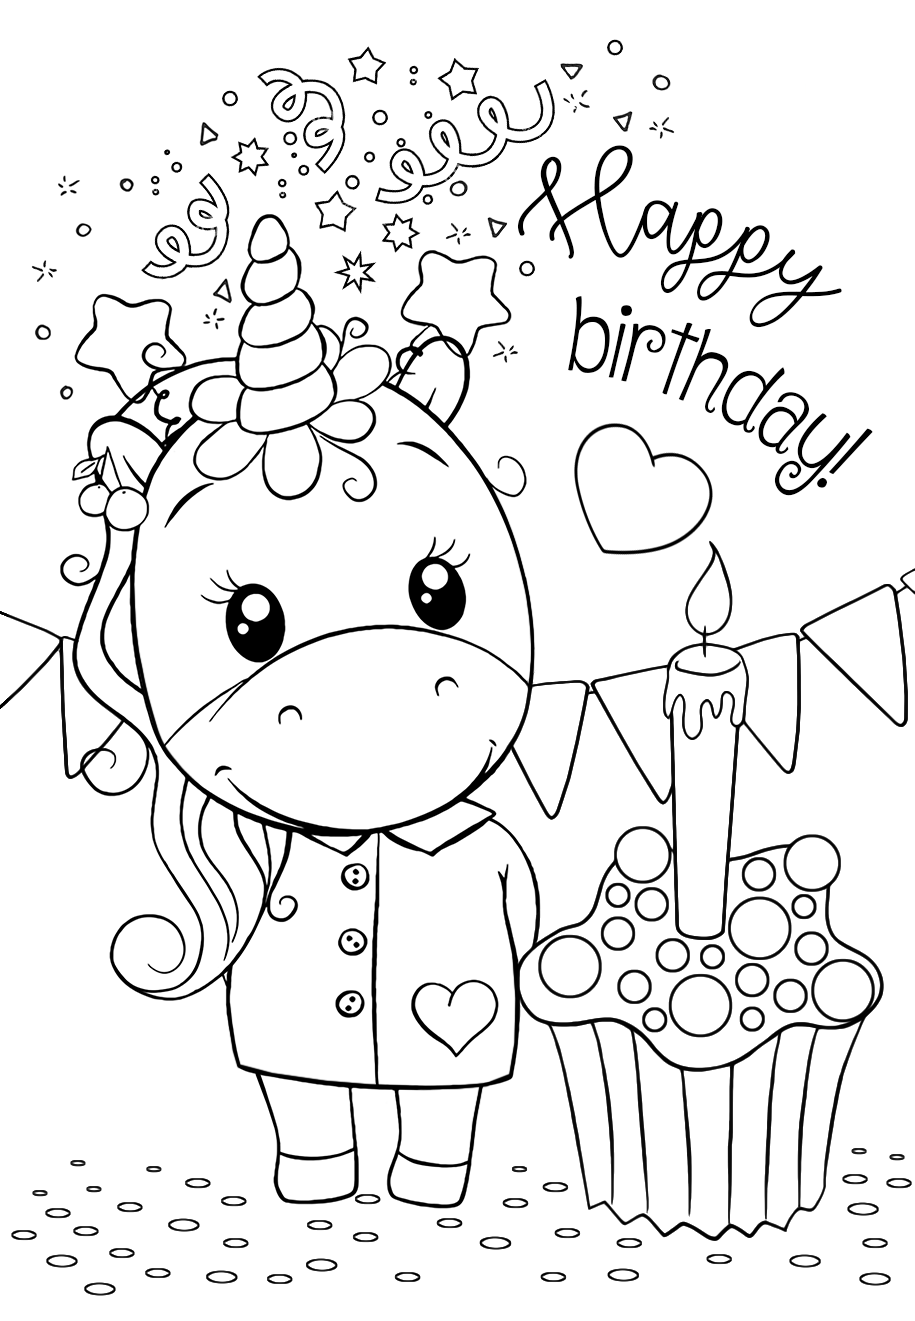 coloring printable birthday birthday cake coloring pages to download and print for free coloring printable birthday